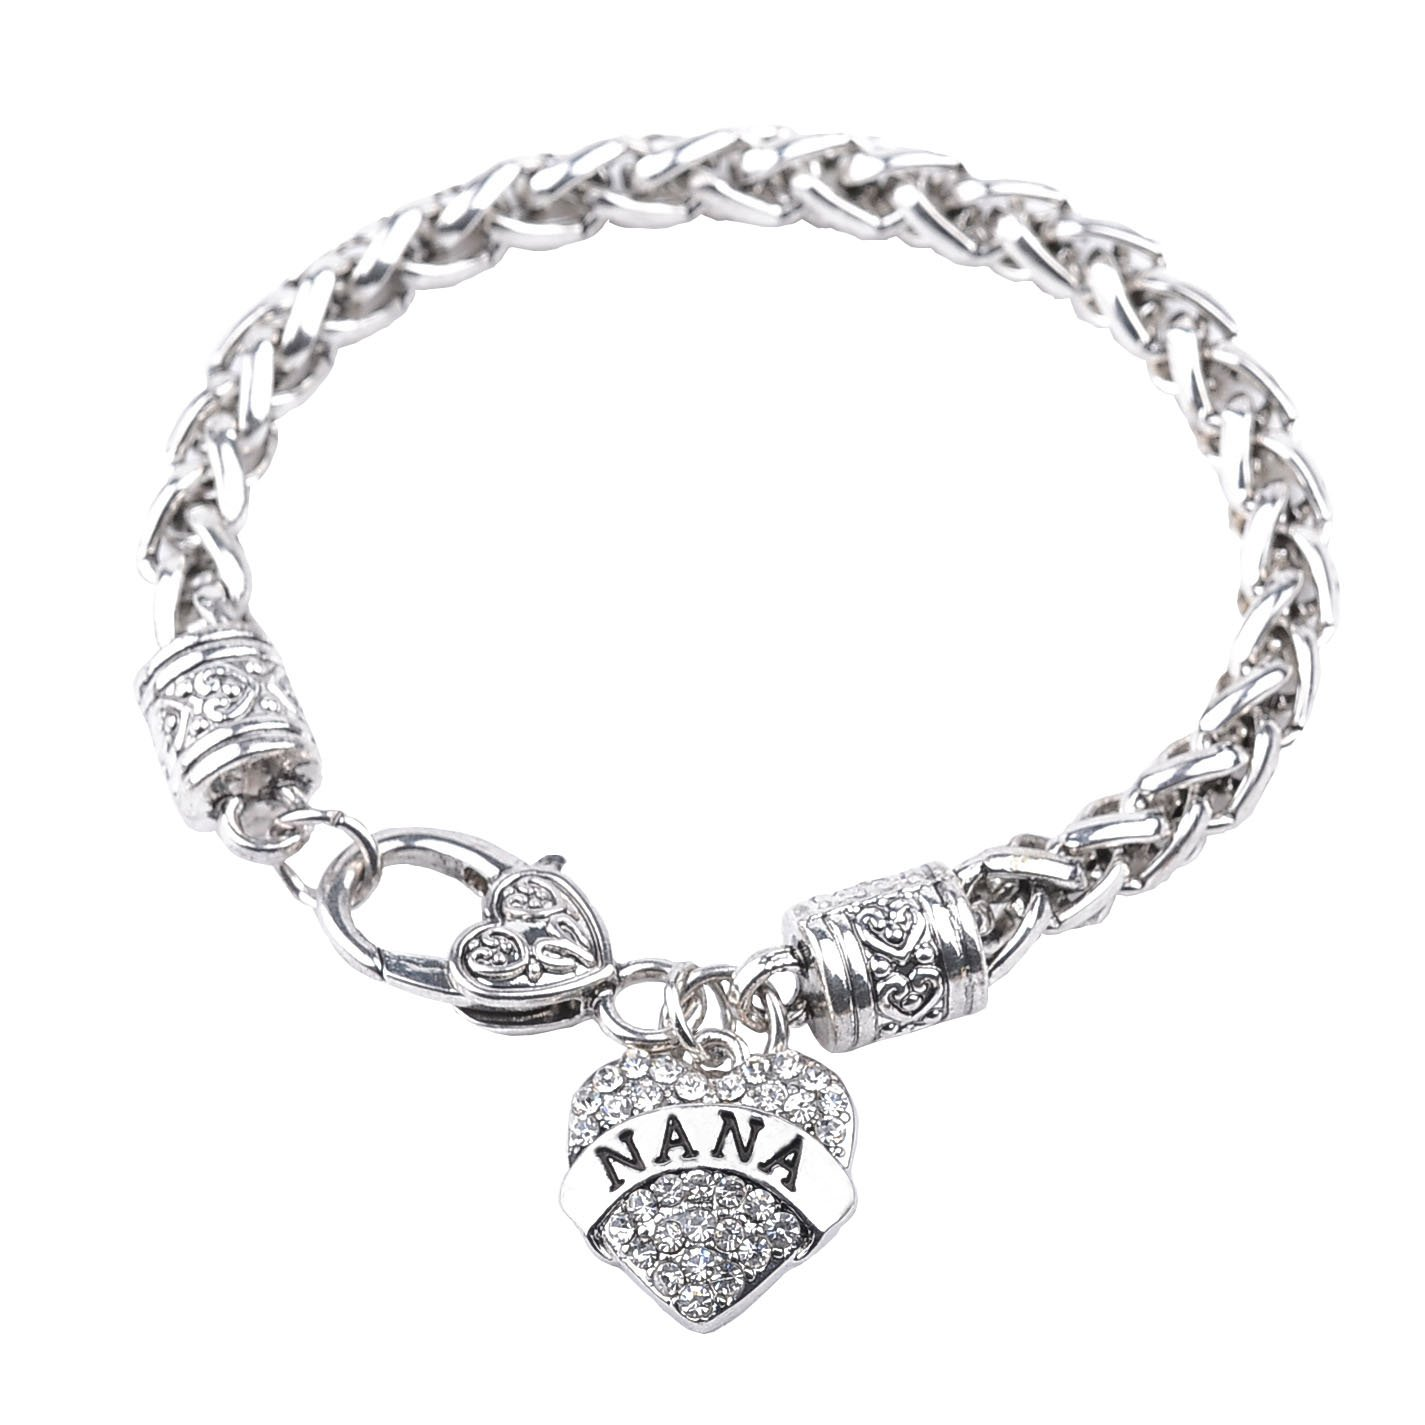 Bling Stars Mother's Day Gift for Mom Bracelet Clear Crystals Lobster Claw Heart Bracelet BR-01-0025